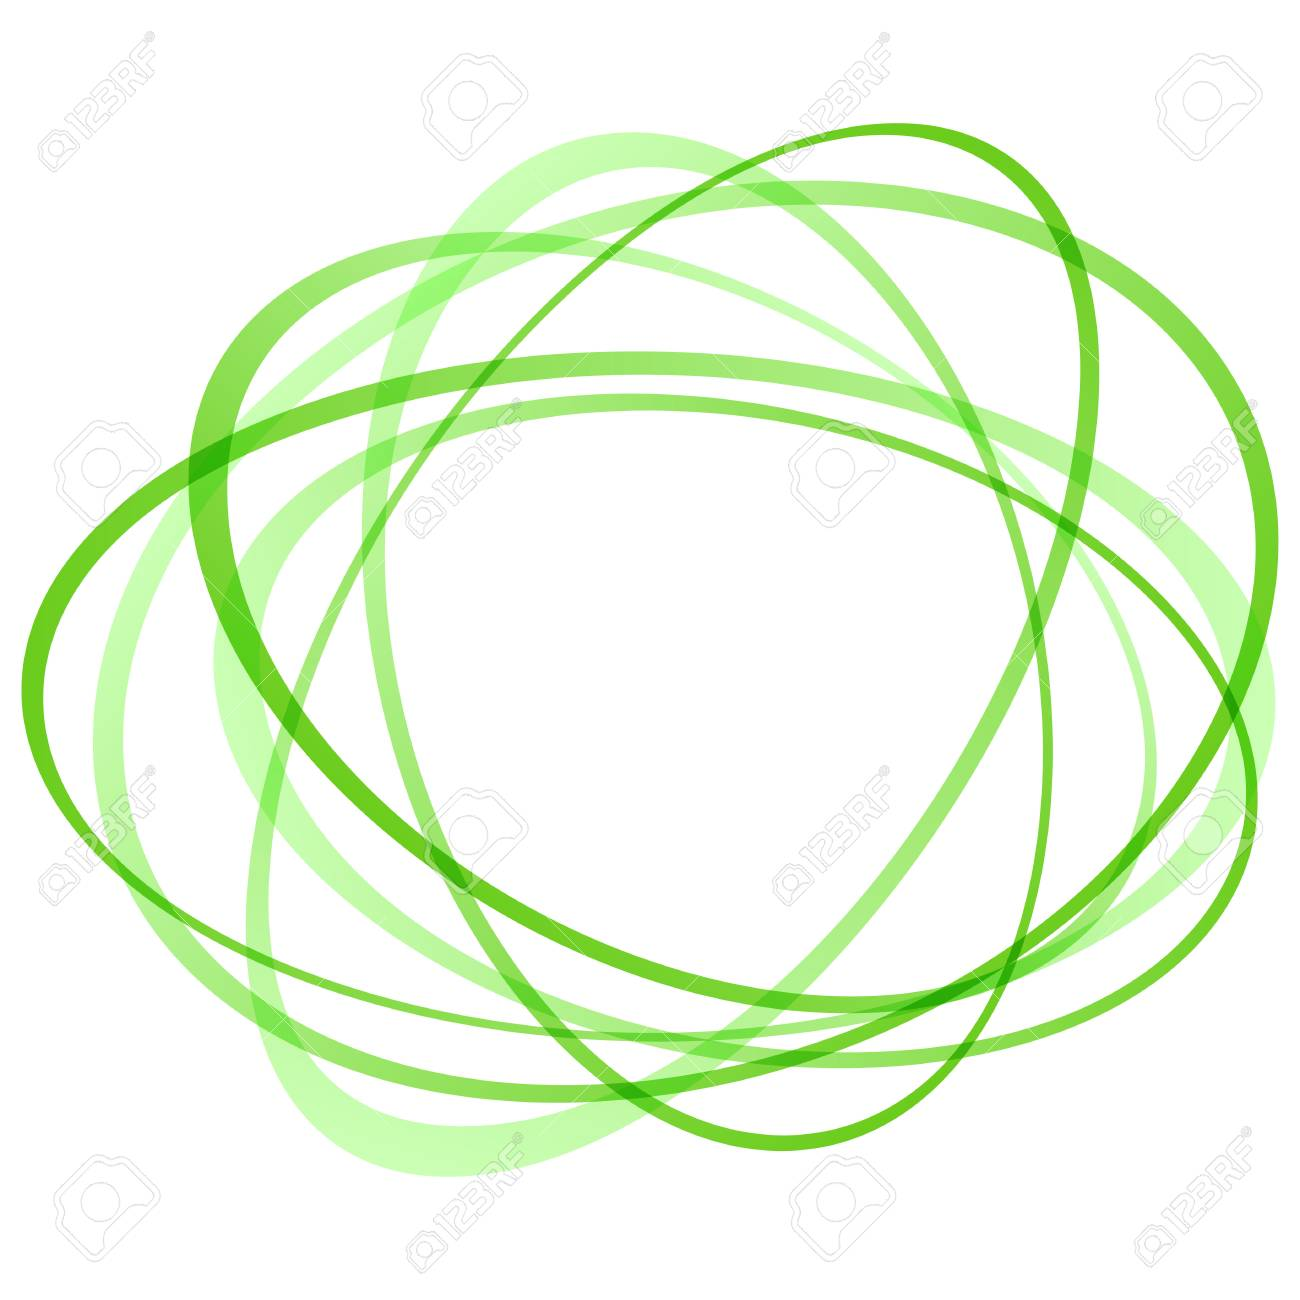 Bright Green Abstract Transparent Swirling Tornado Of Circles